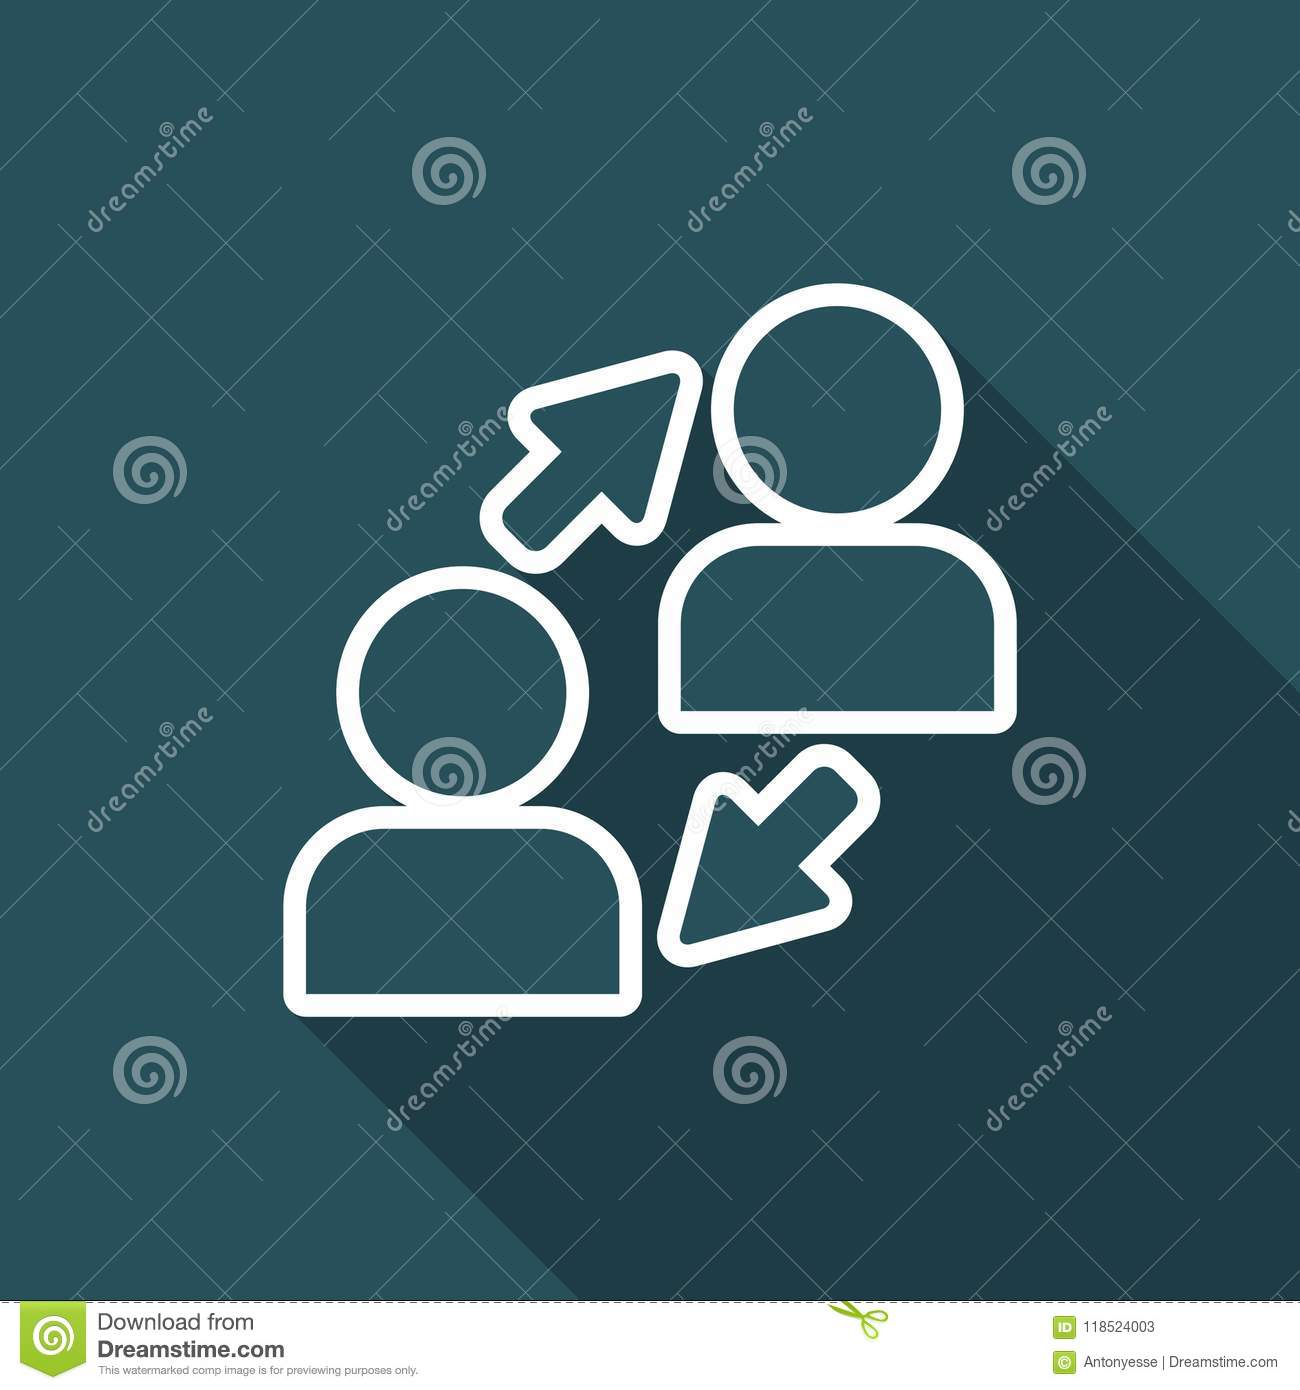 People Connection - Minimal Vector Icon Stock Vector - Illustration ...